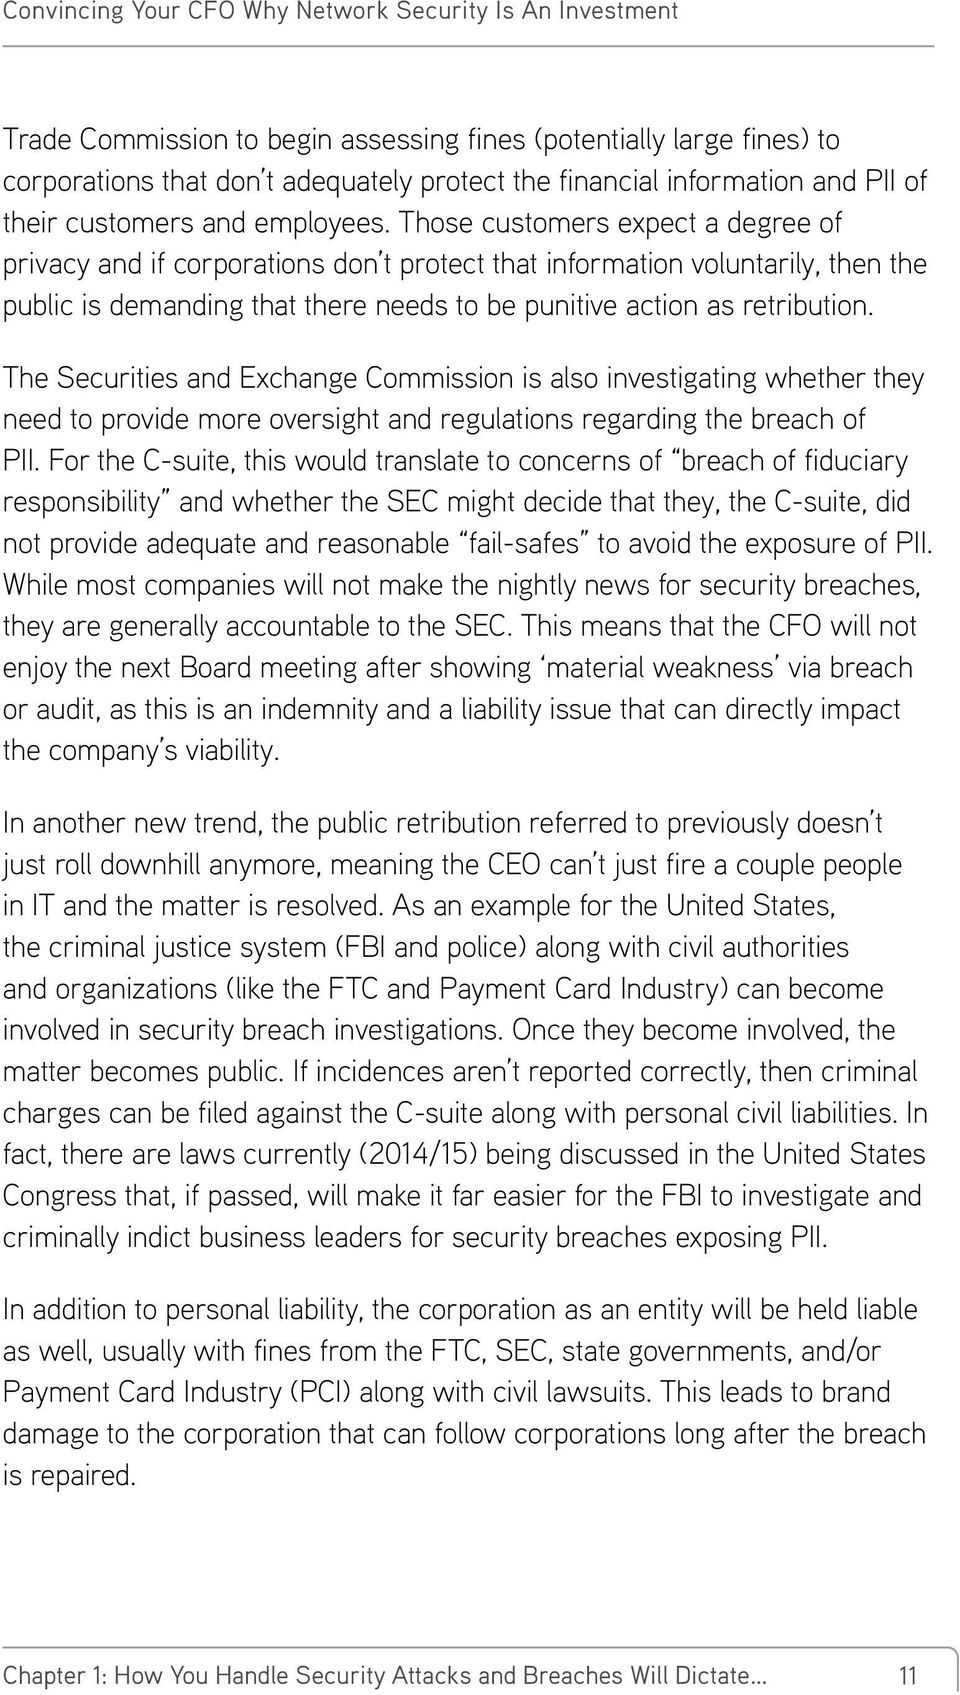 The Securities and Exchange Commission is also investigating whether they need to provide more oversight and regulations regarding the breach of PII.